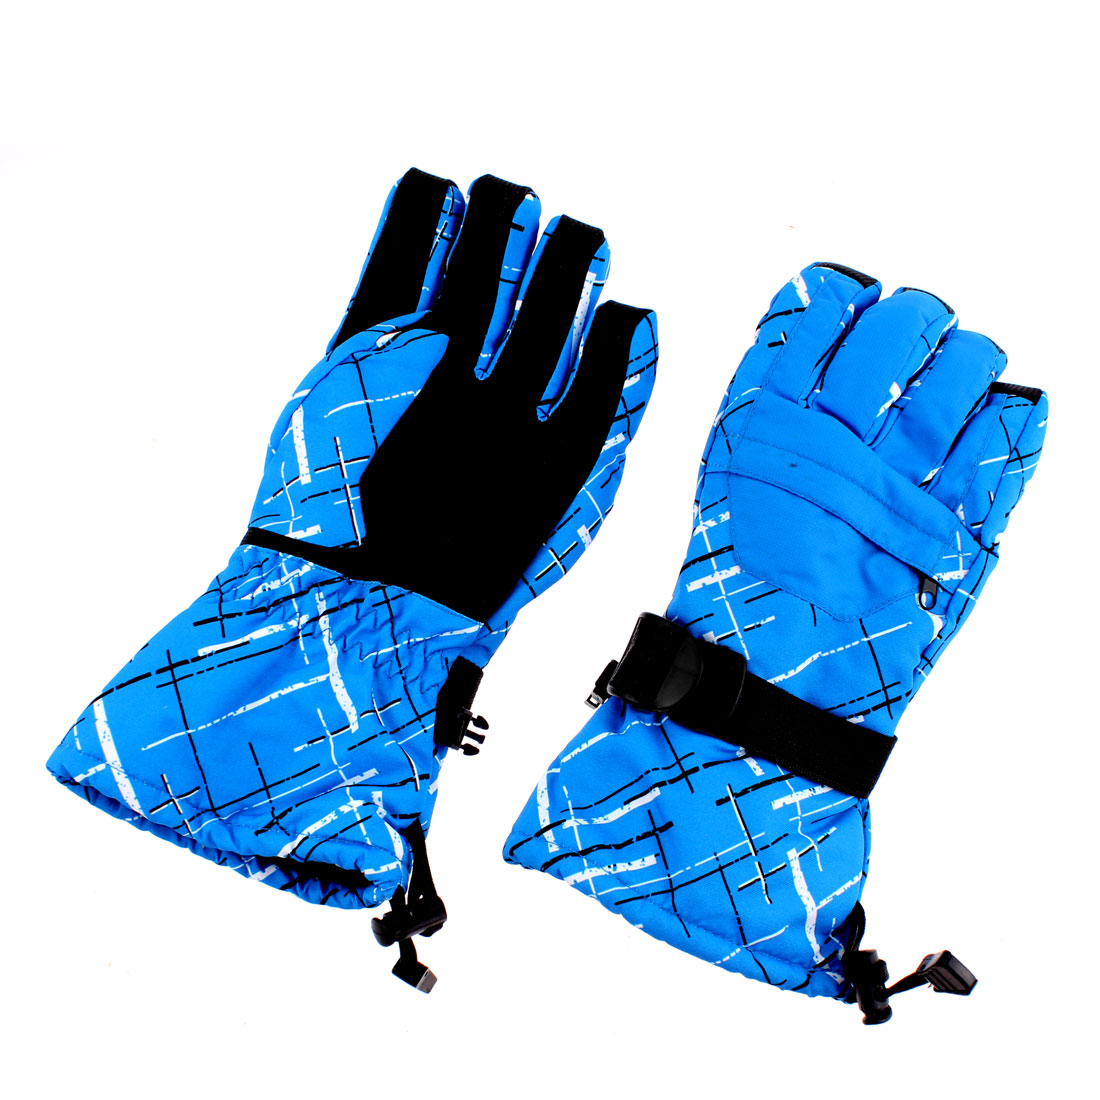 XL Winter Waterproof Worm Men Snow Skiing Full Finger Gloves Blue Graffiti Pair